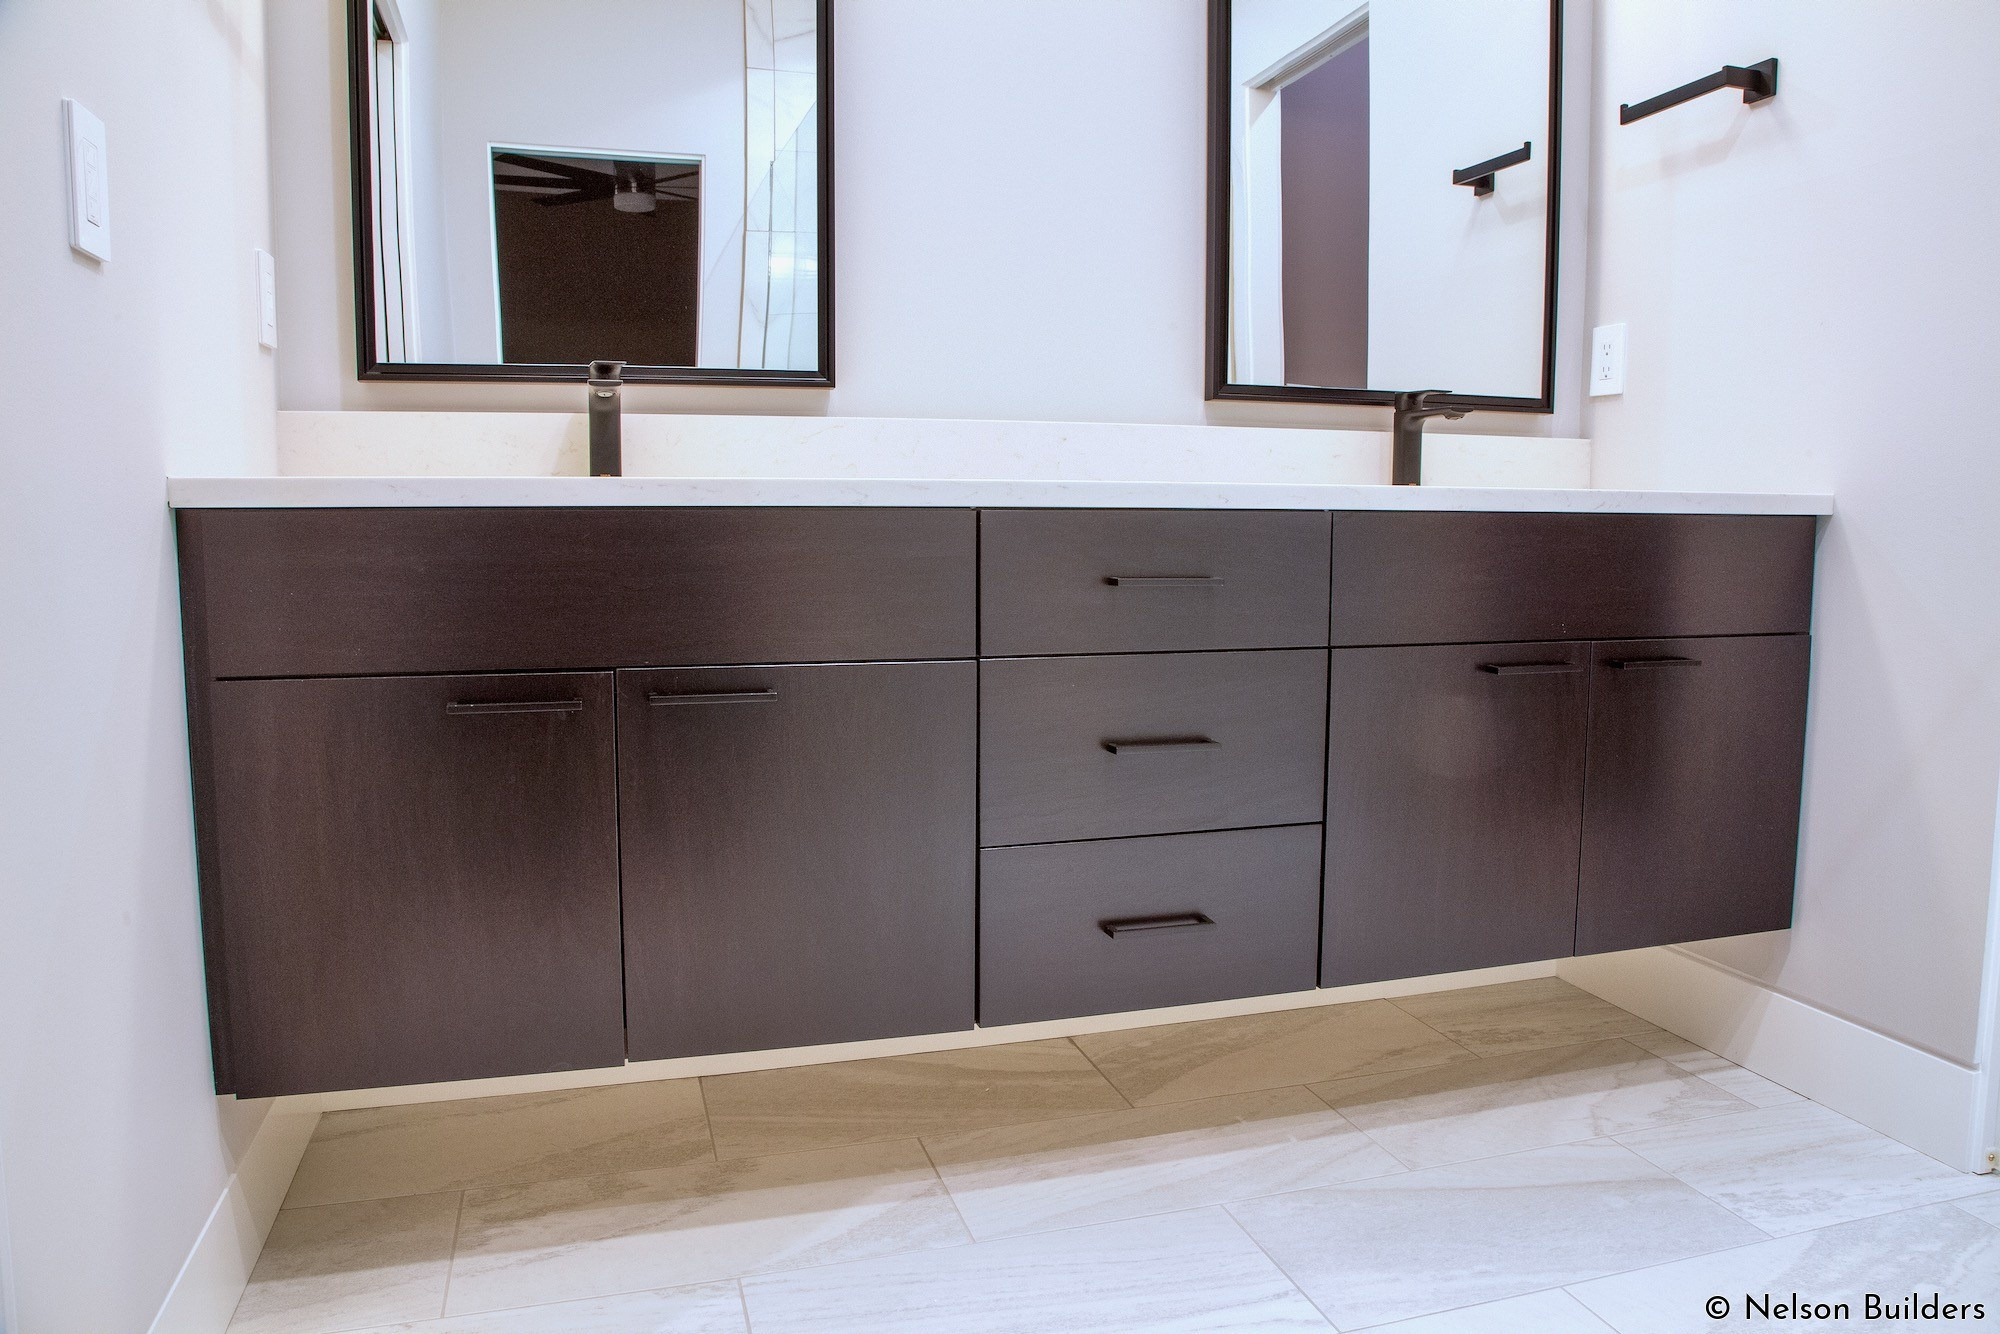 The bathrooms feature floating vanities that allow for open space below, highlighting the flush base detail.